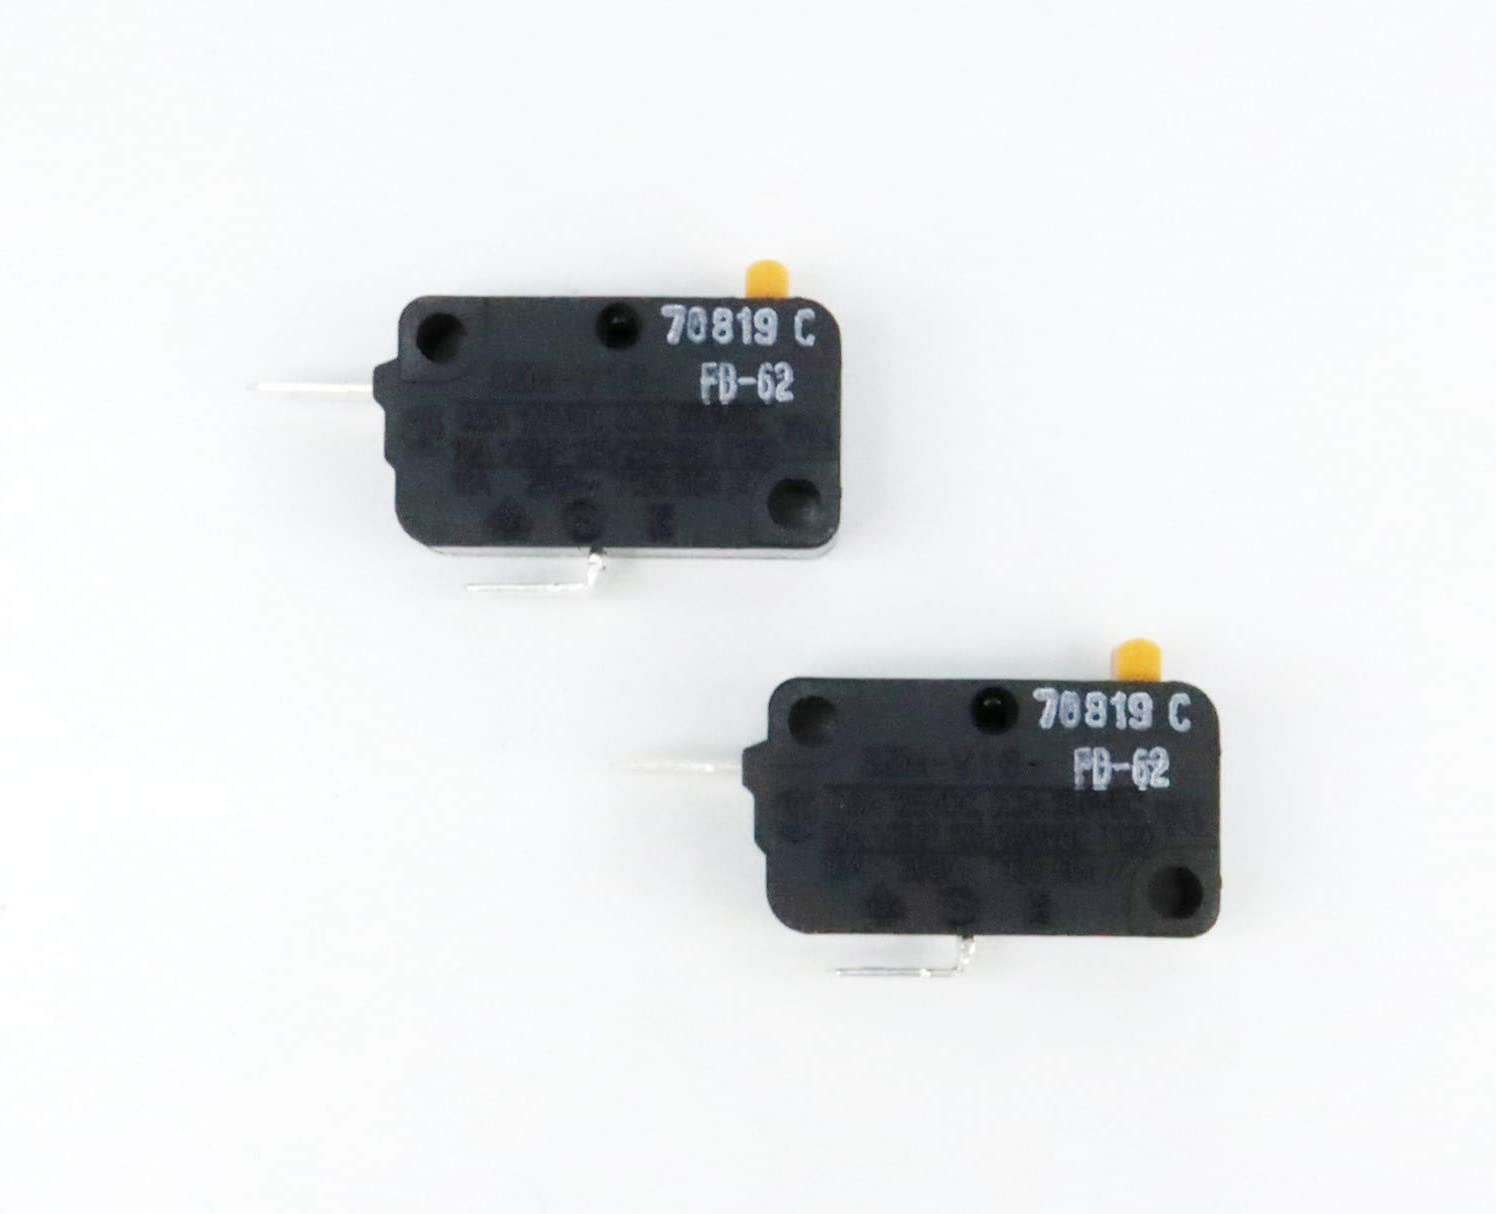 SZM-V16-FD-62 WB24X830 (2pcs) OEM Replacement Part for Monitor Switch by OEM Mania for GE Starion Microwave Oven: Home Improvement